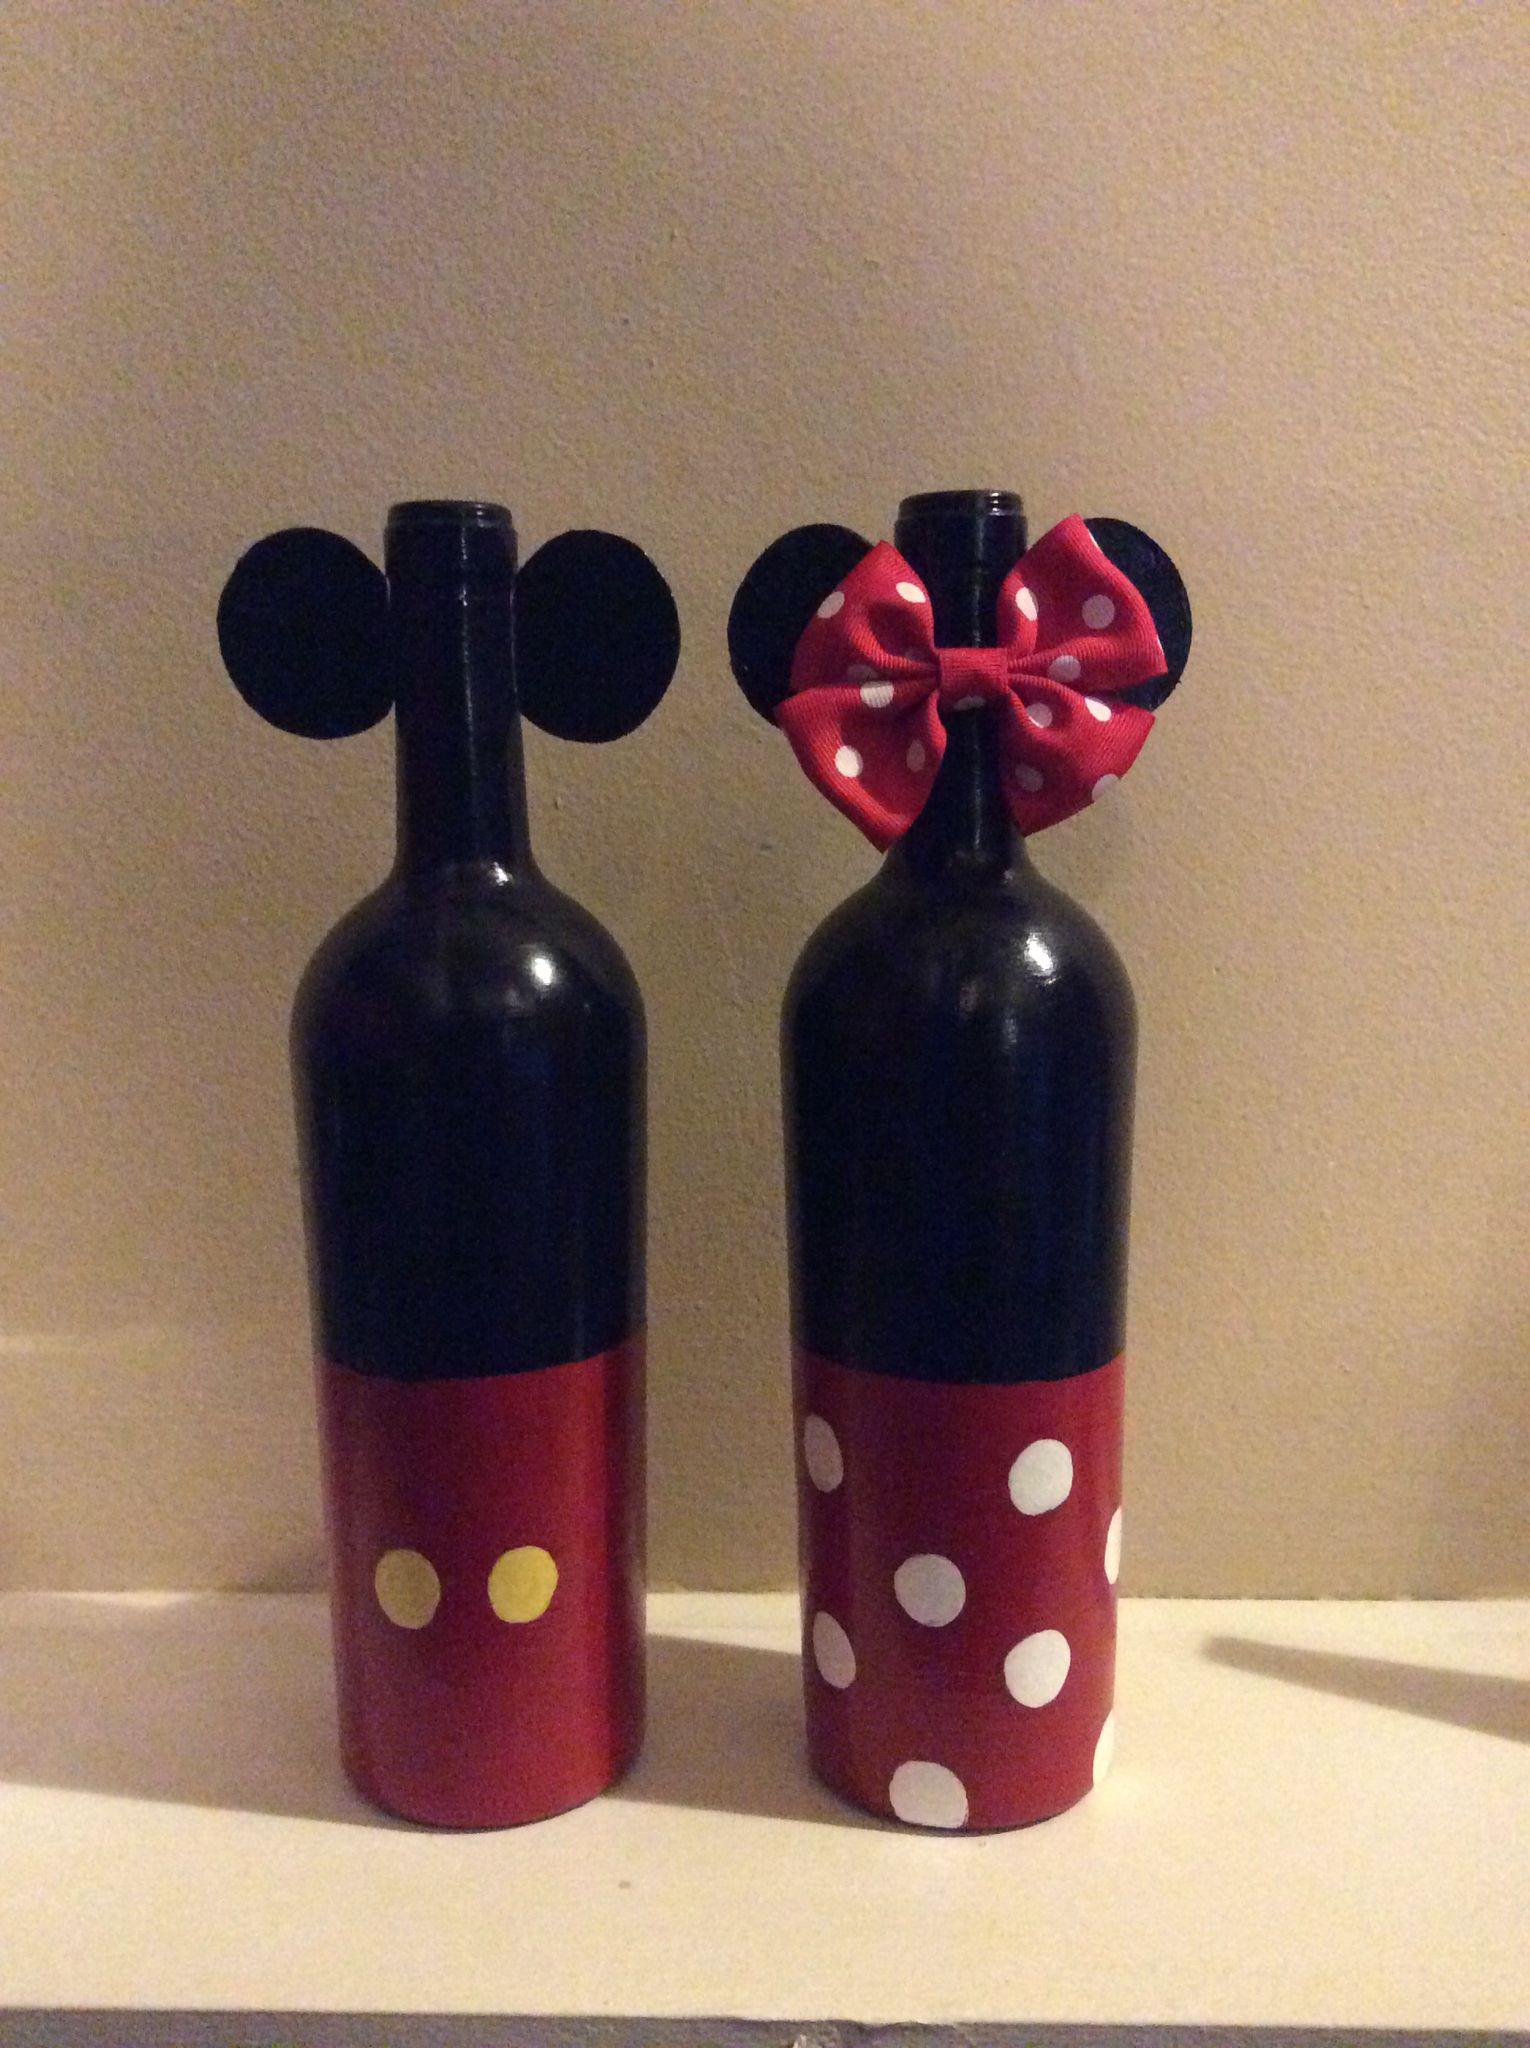 My painted Mickey and Minnie Mouse wine